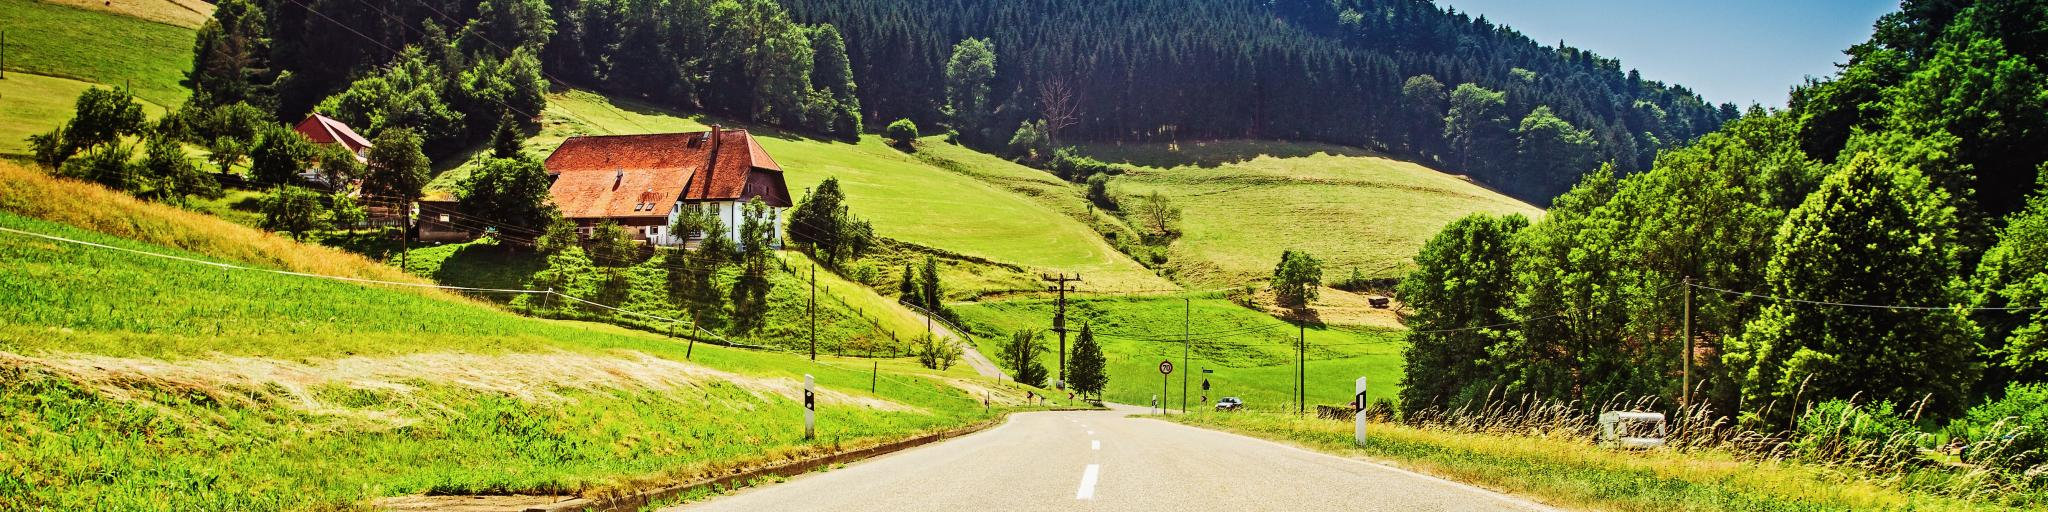 Cars on a German road with mountains and lush green hills in the background